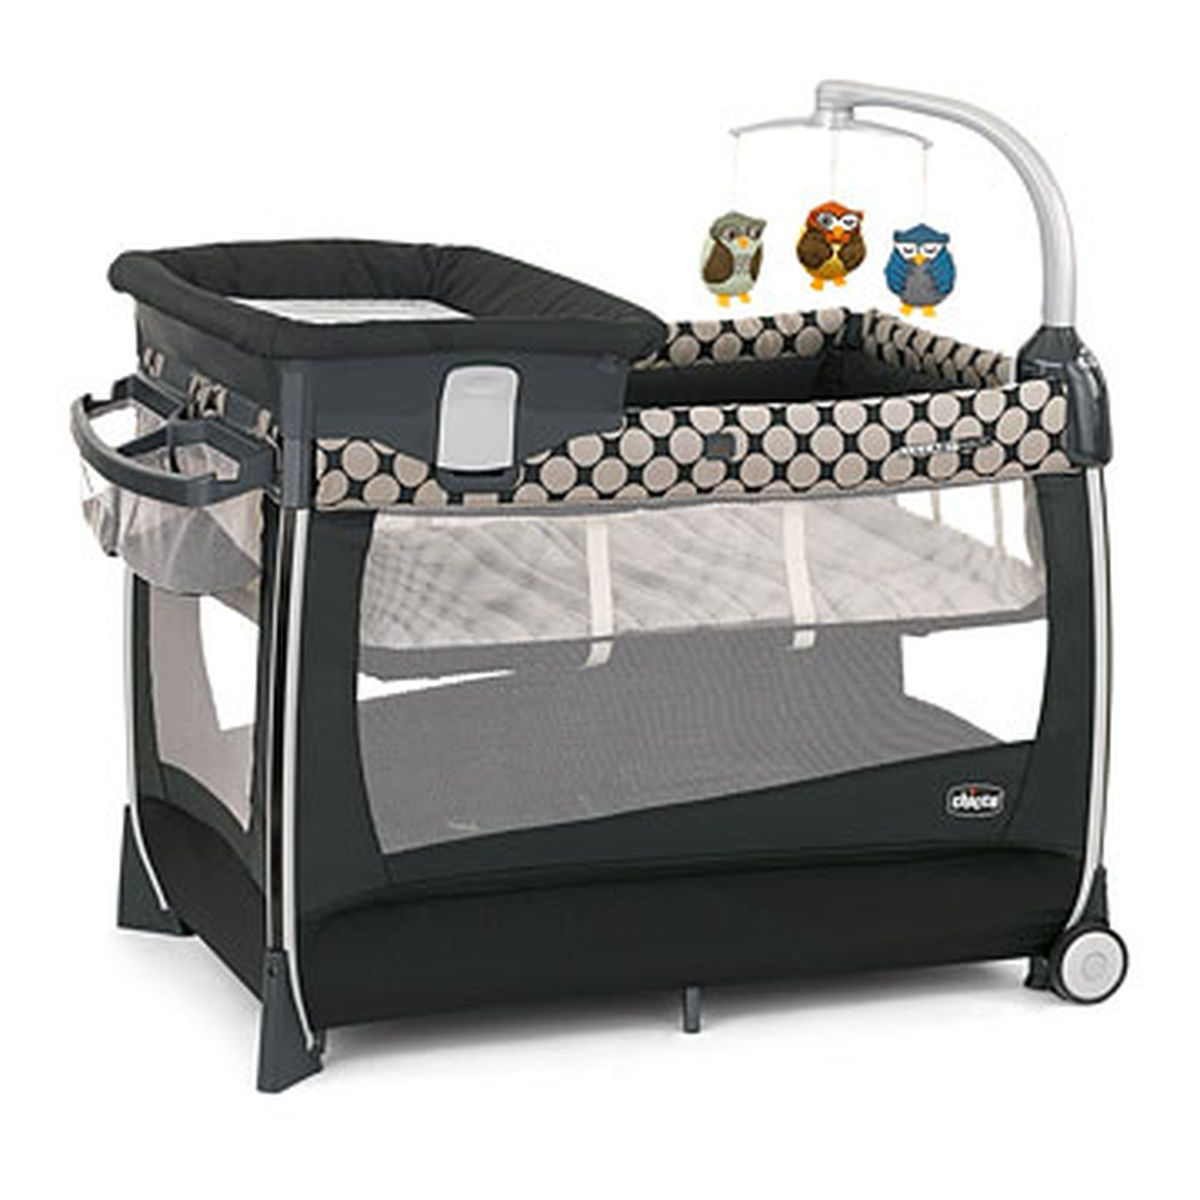 Professional factory pack n play mattress b pad with Bestar Price